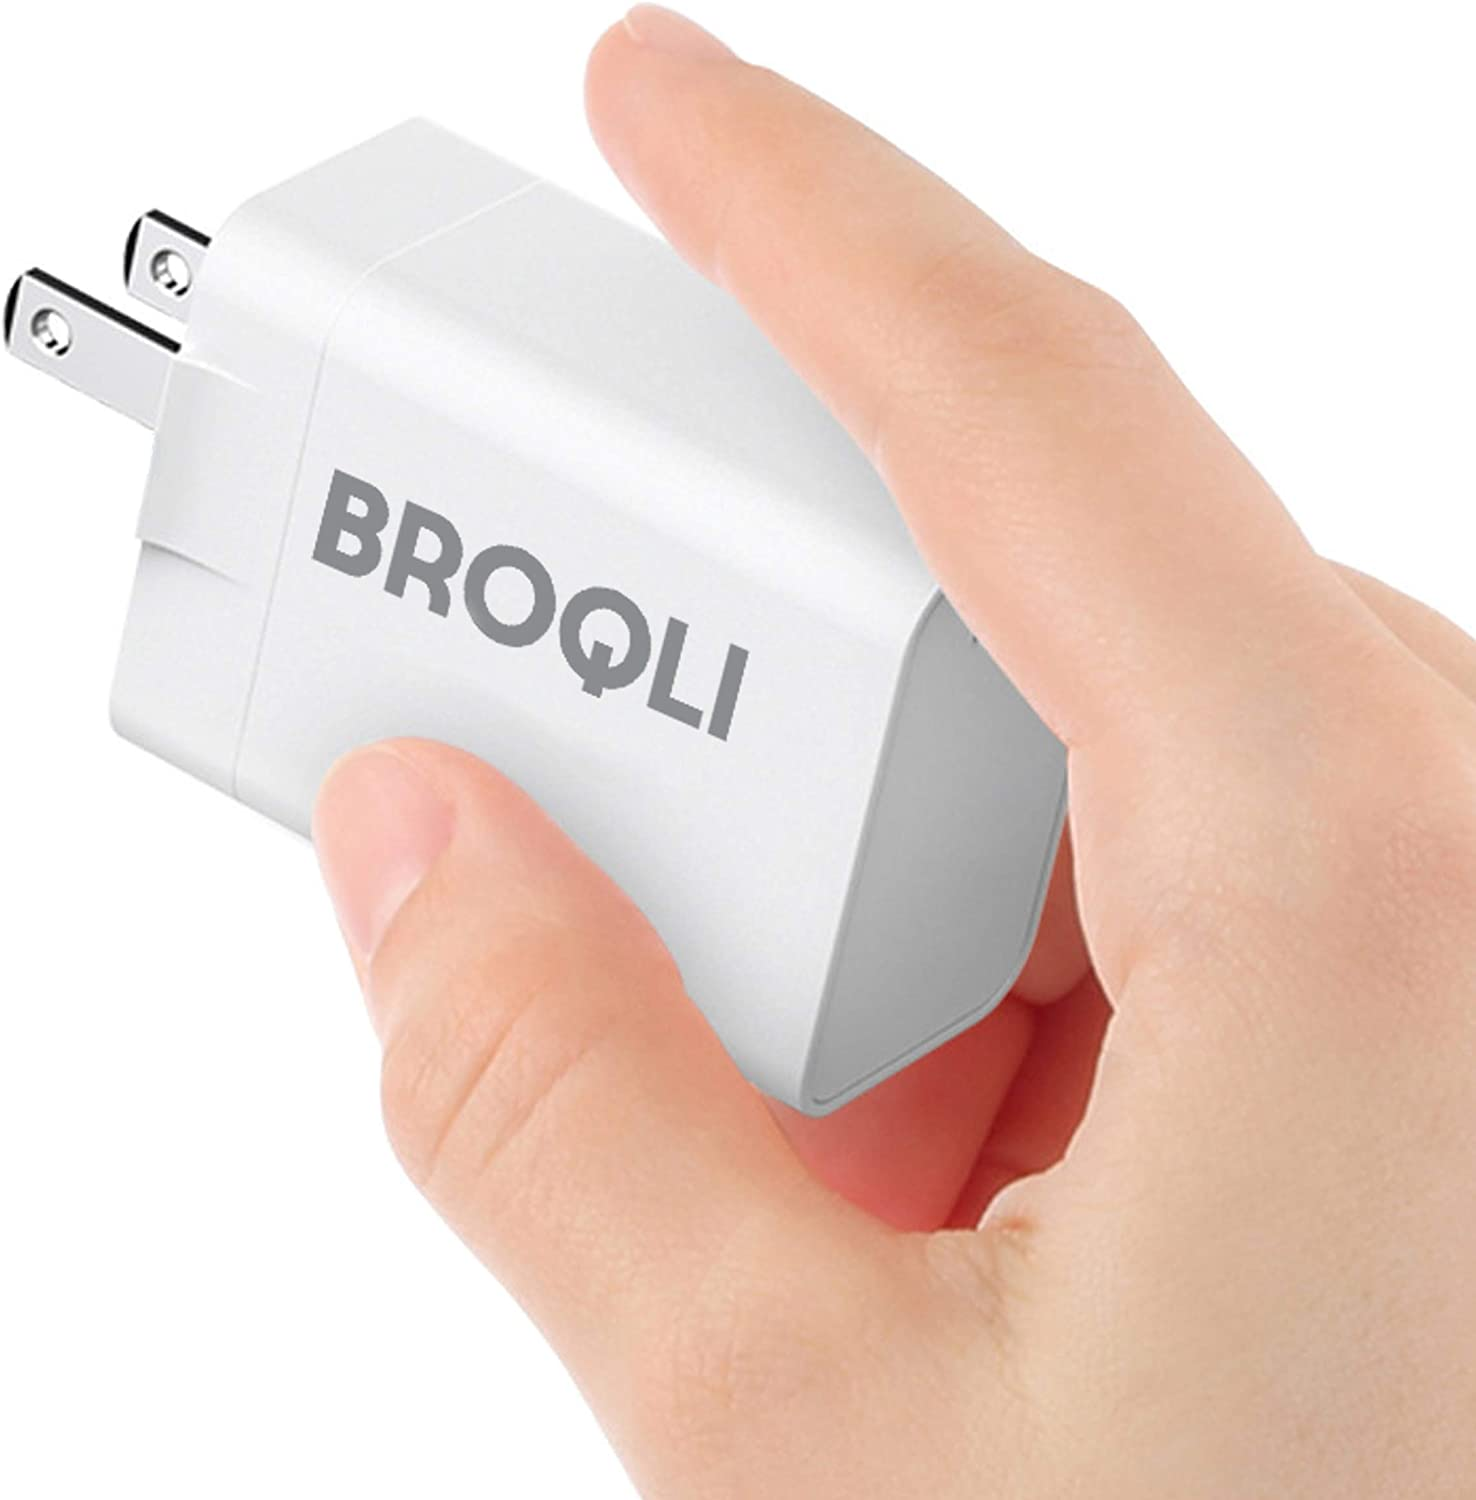 BROQLI USB Type C Wall Charger Portable Adapter with EU Plug, 30W Power Delivery 3.0 for MacBook Pro/Air 2018, iPad Pro 2018/mini, iPhone XS/Max/XR/X/8/7/Plus, Galaxy Note10/S10/S9, Pixel 3 XL (White)